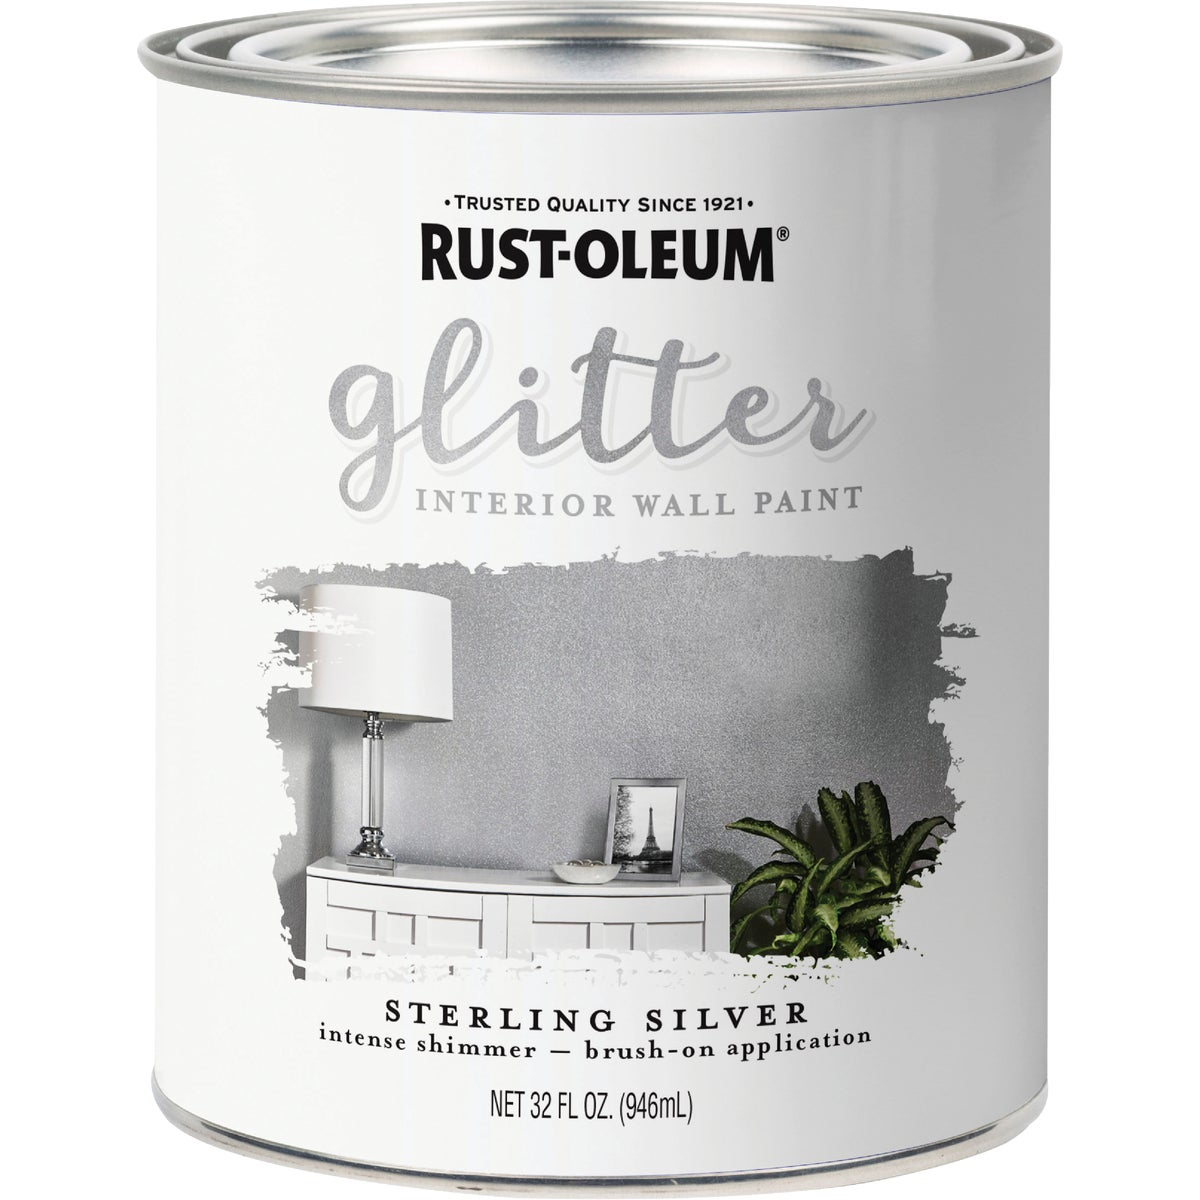 COLOR 2 FILL STICK - 215363 by Rustoleum